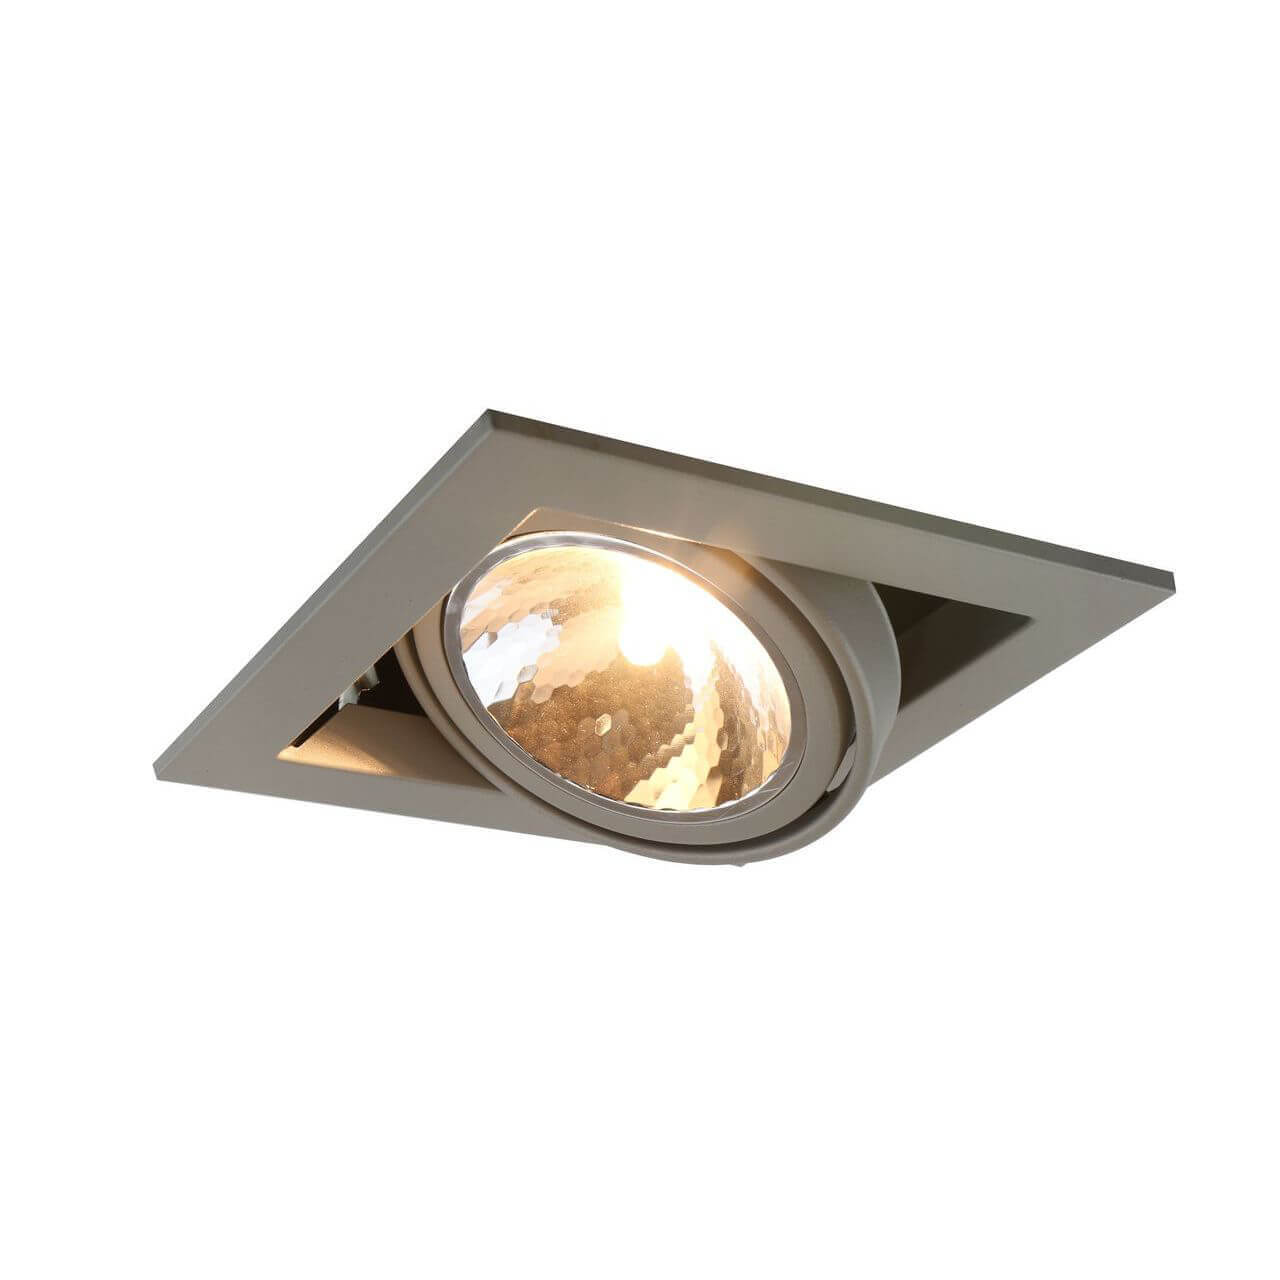 Светильник Arte Lamp A5949PL-1GY Cardani Semplice GY